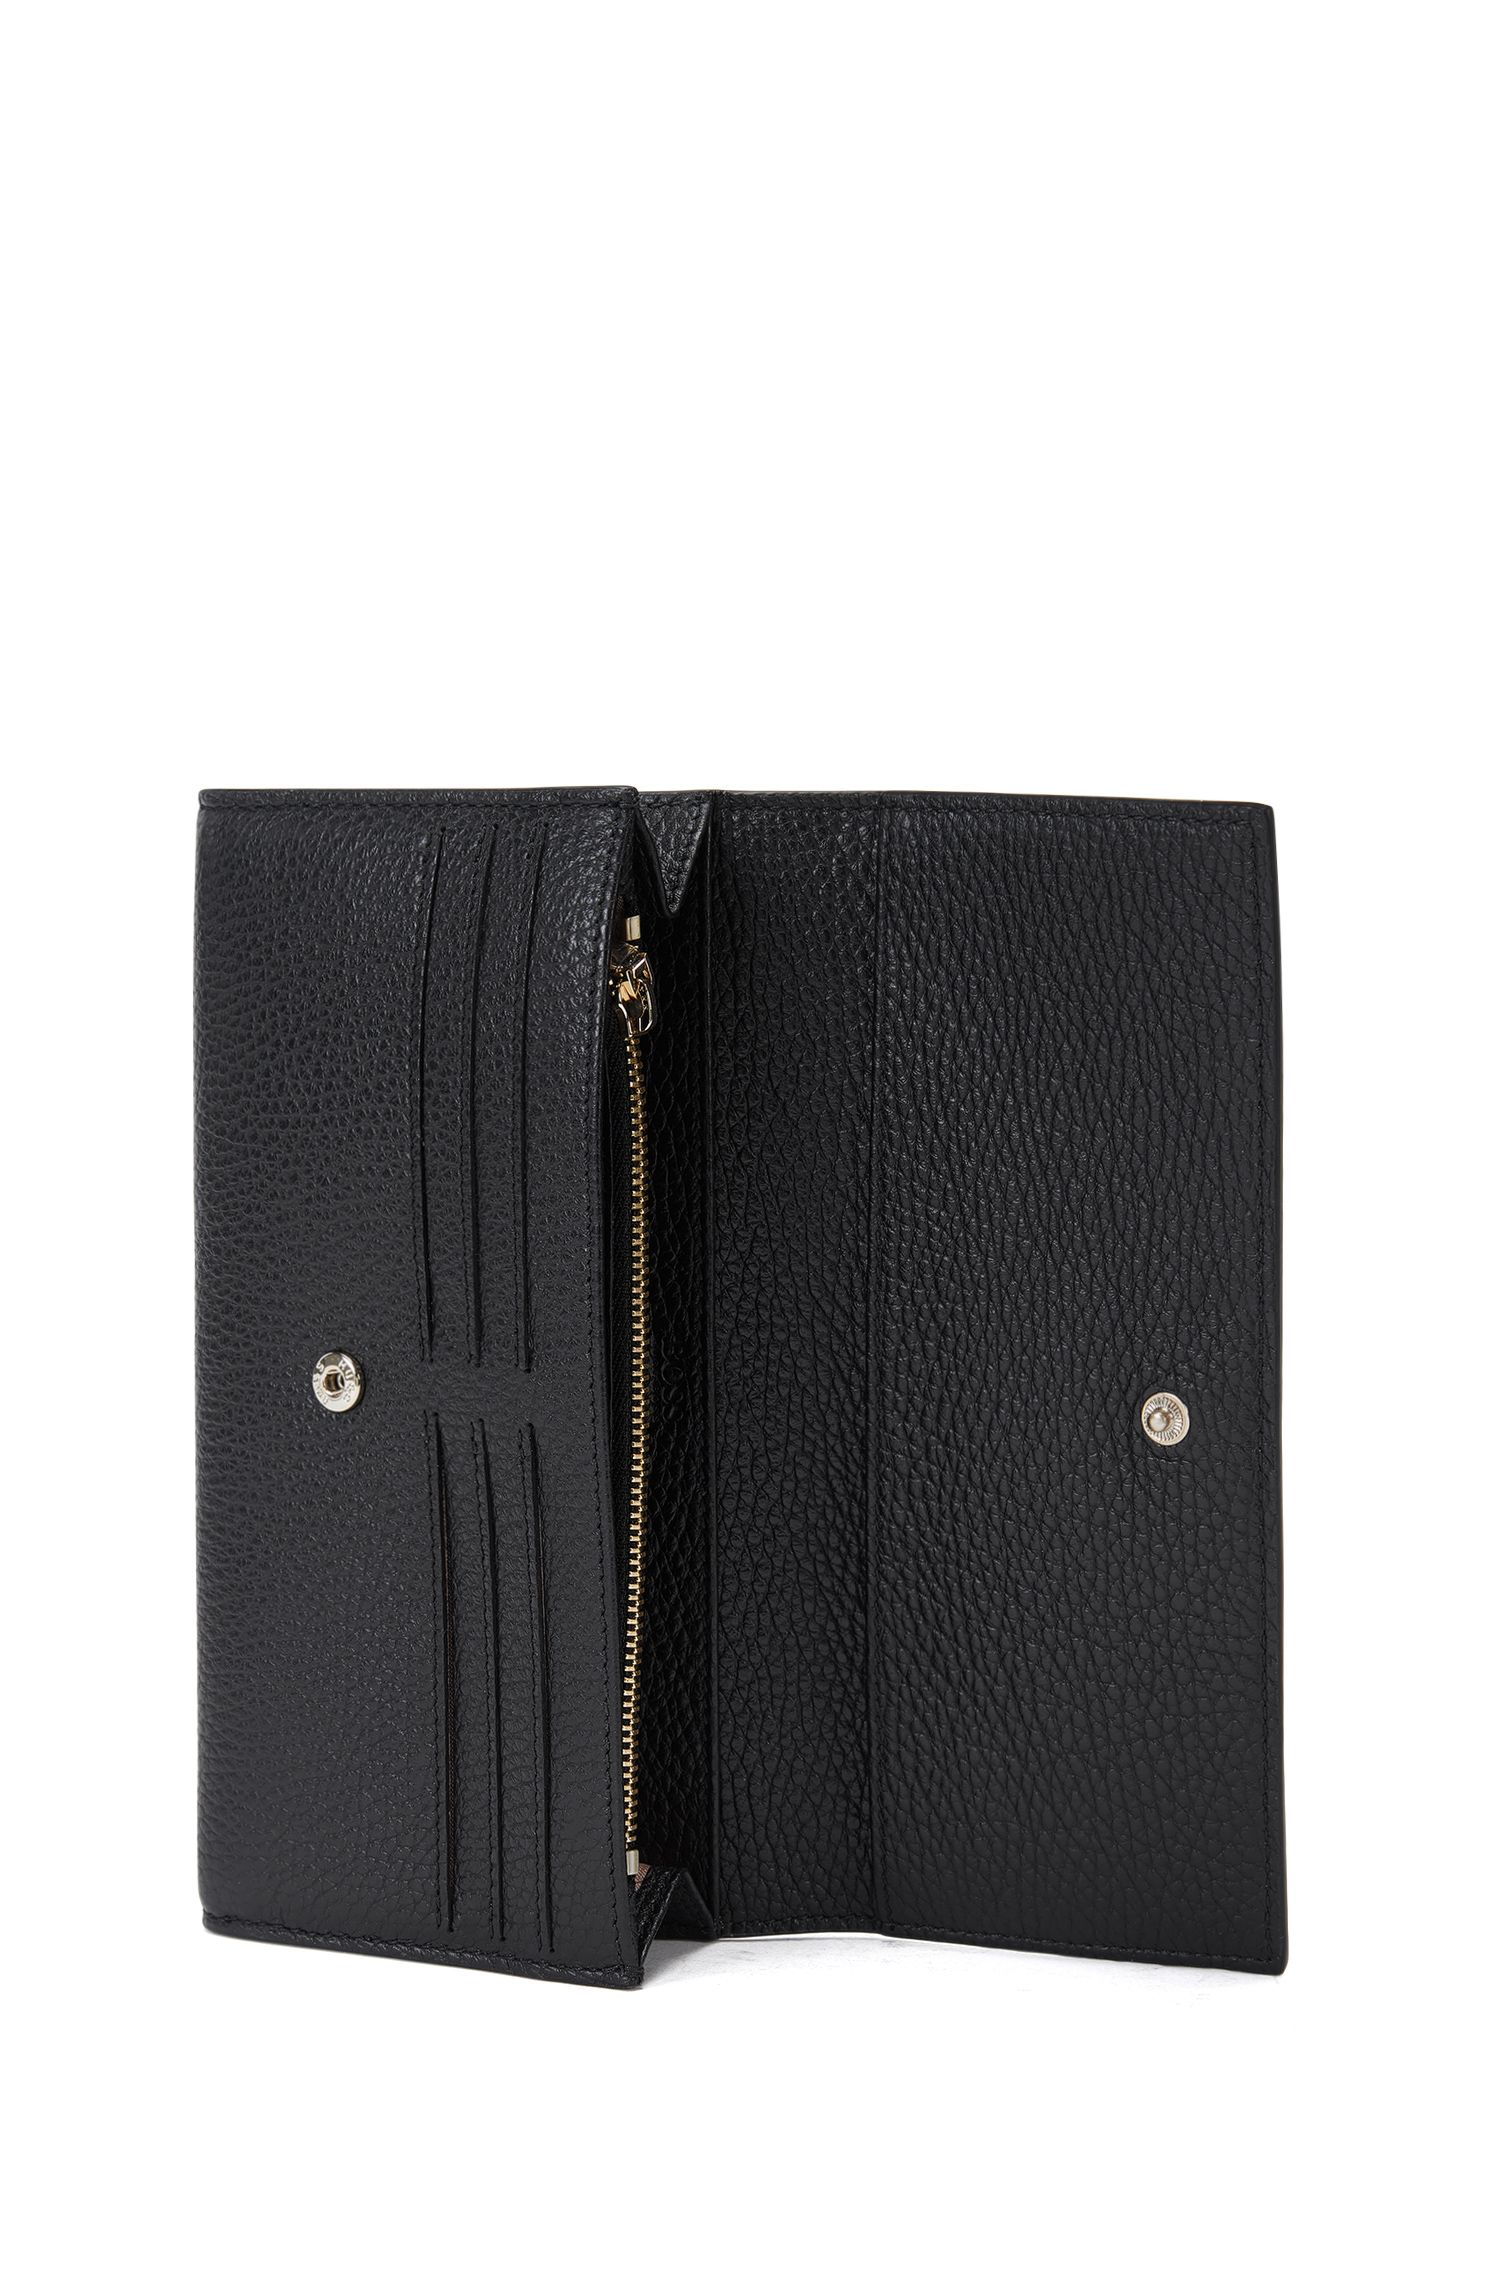 Leather Zip Wallet | Staple Continental A, Black